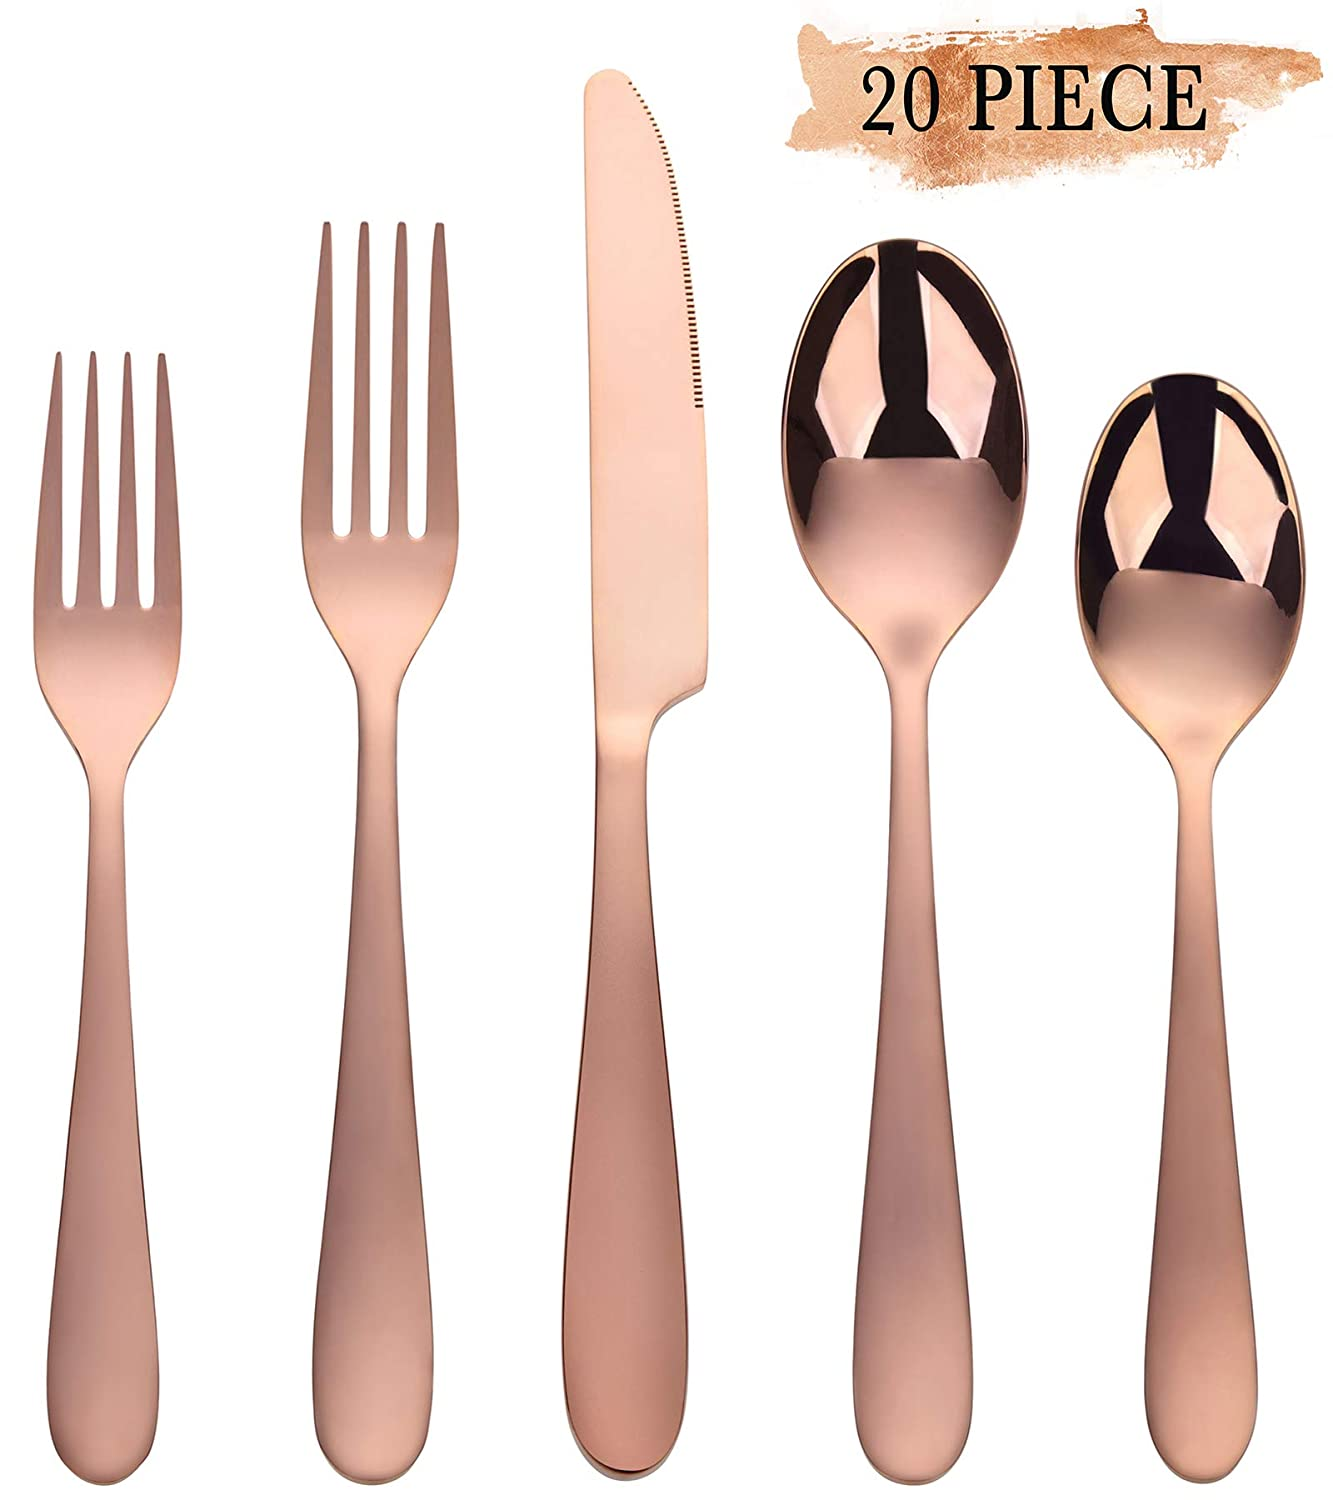 Rose Gold Silverware Set, Stainless Steel Silverware Flatware 20-Piece Cutlery Set, Utensils Service for 4 Include Mirror Polished Knife/Fork/Spoon, Dishwasher Safe